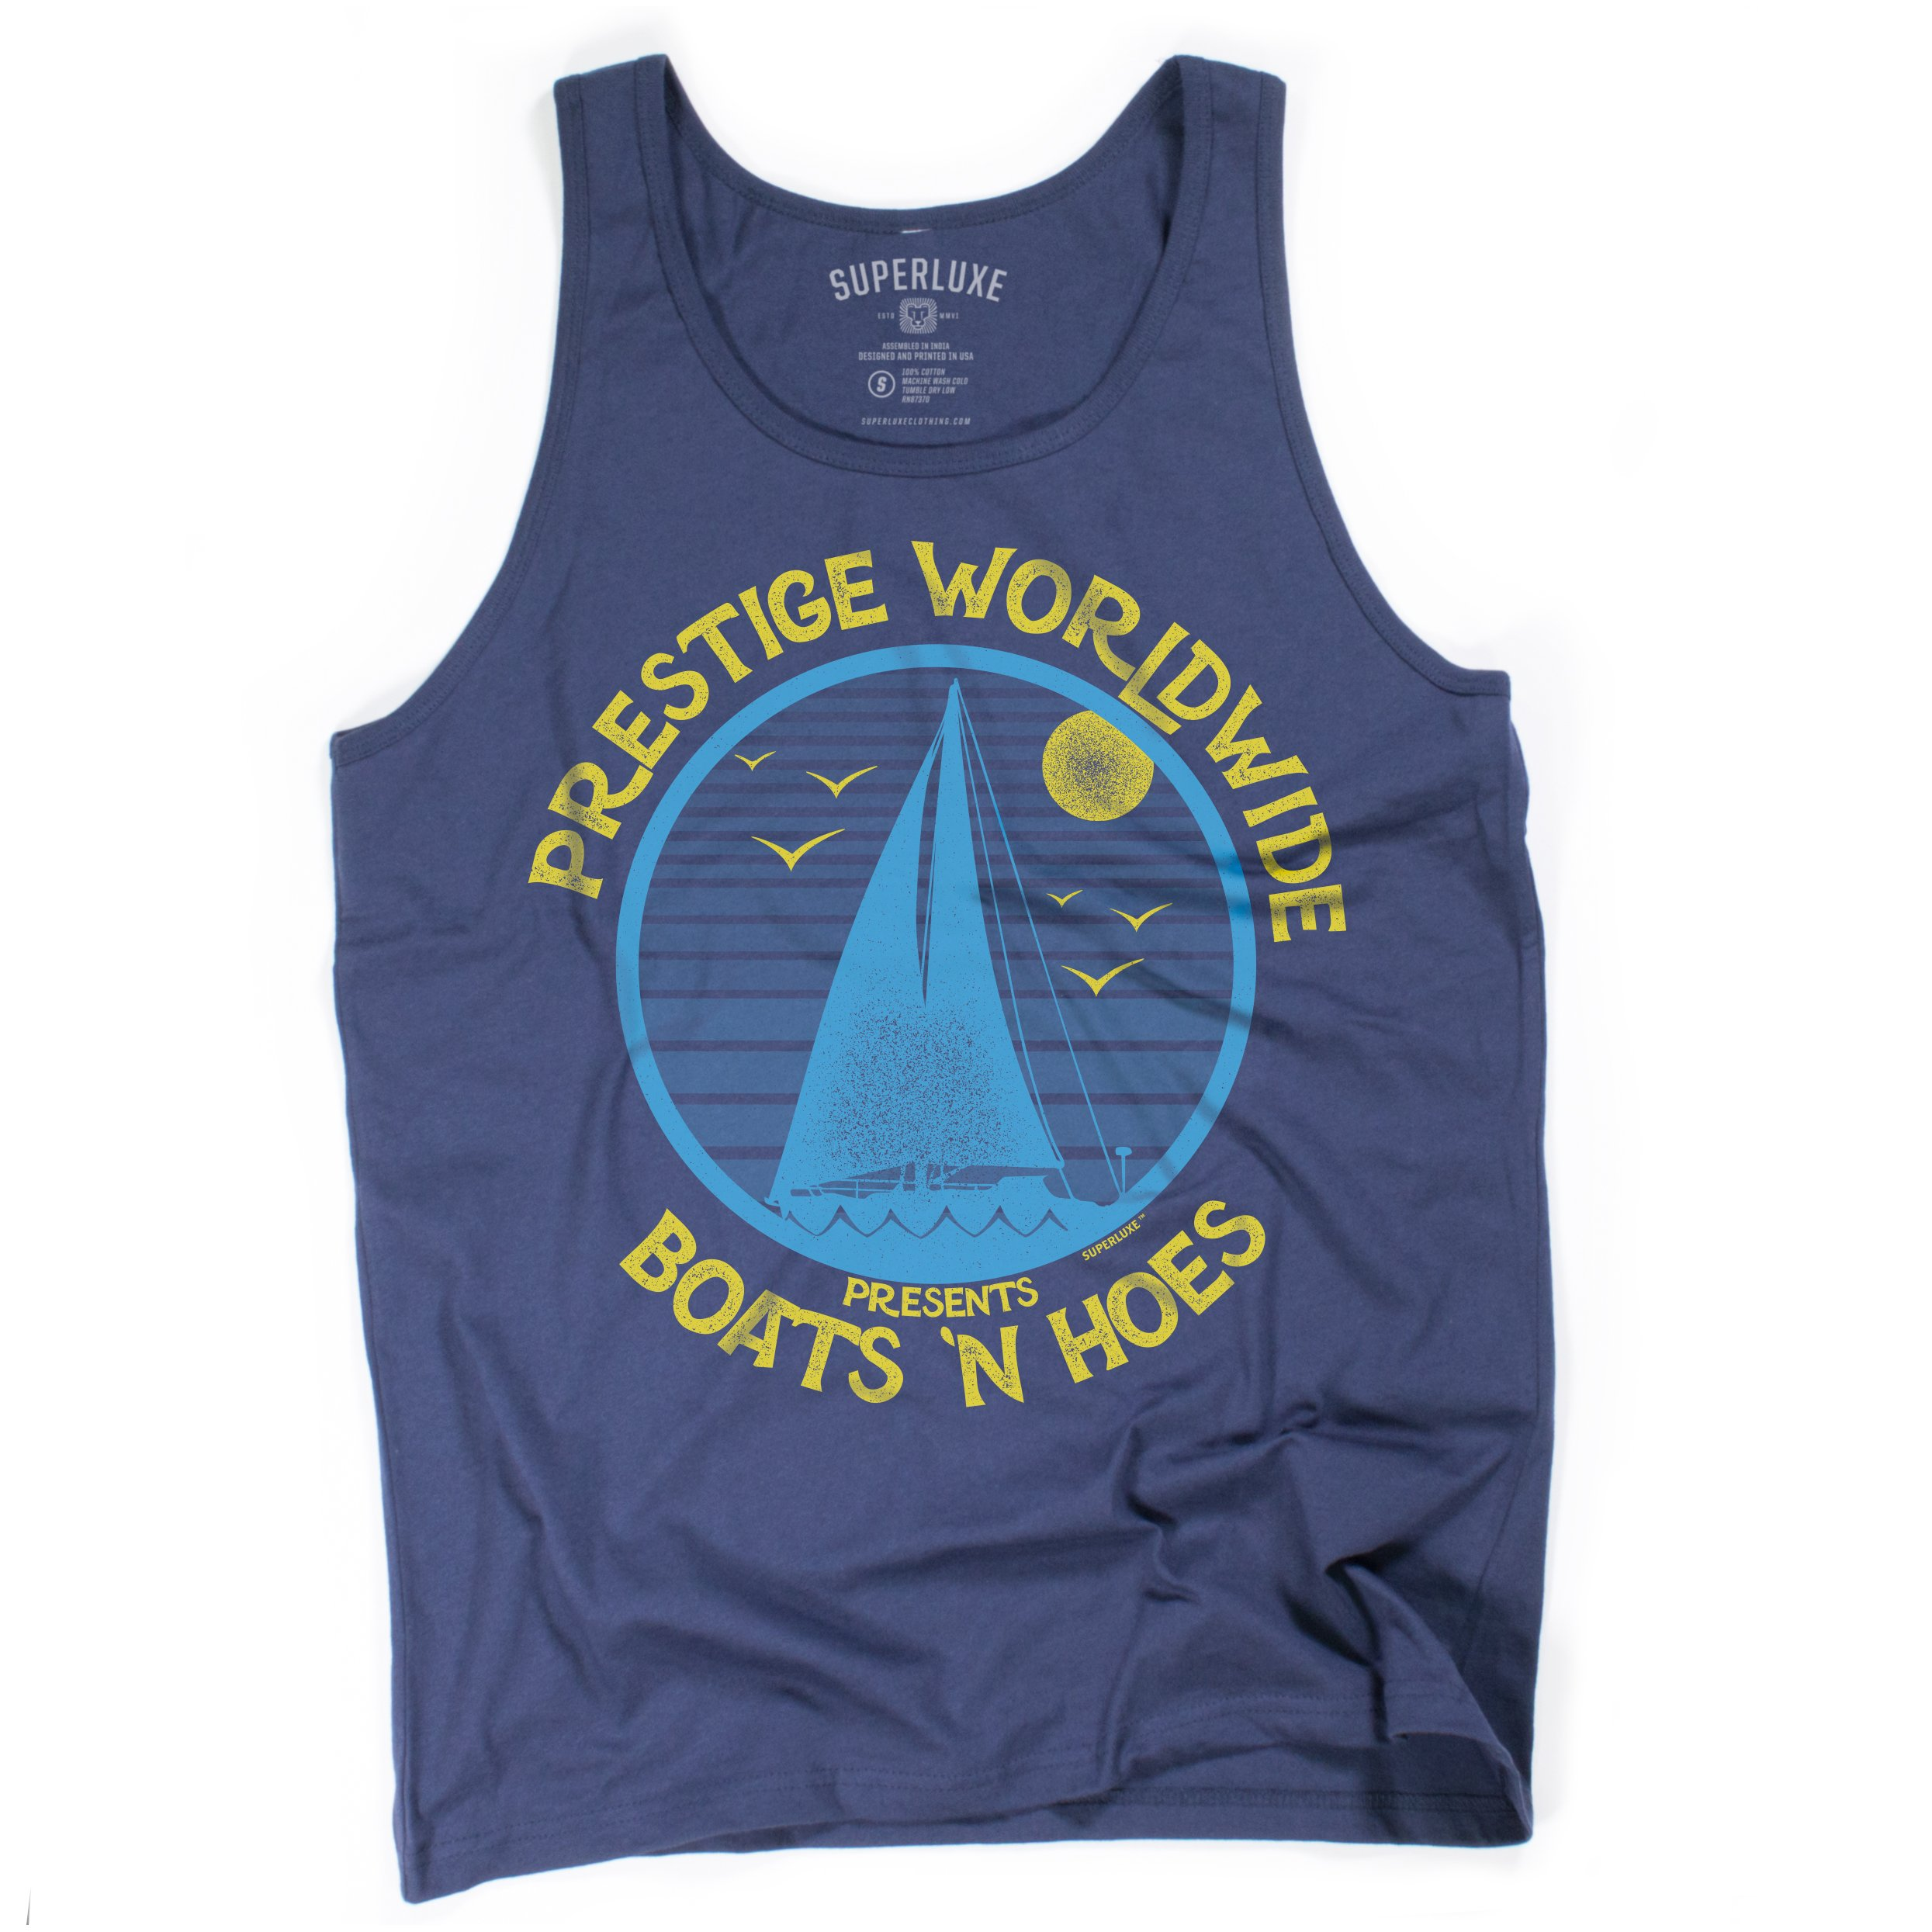 126915a057971 Superluxe Clothing Mens Unisex Boats N Hoes Prestige Worldwide Funny Step  Brothers Sailing Tank Top